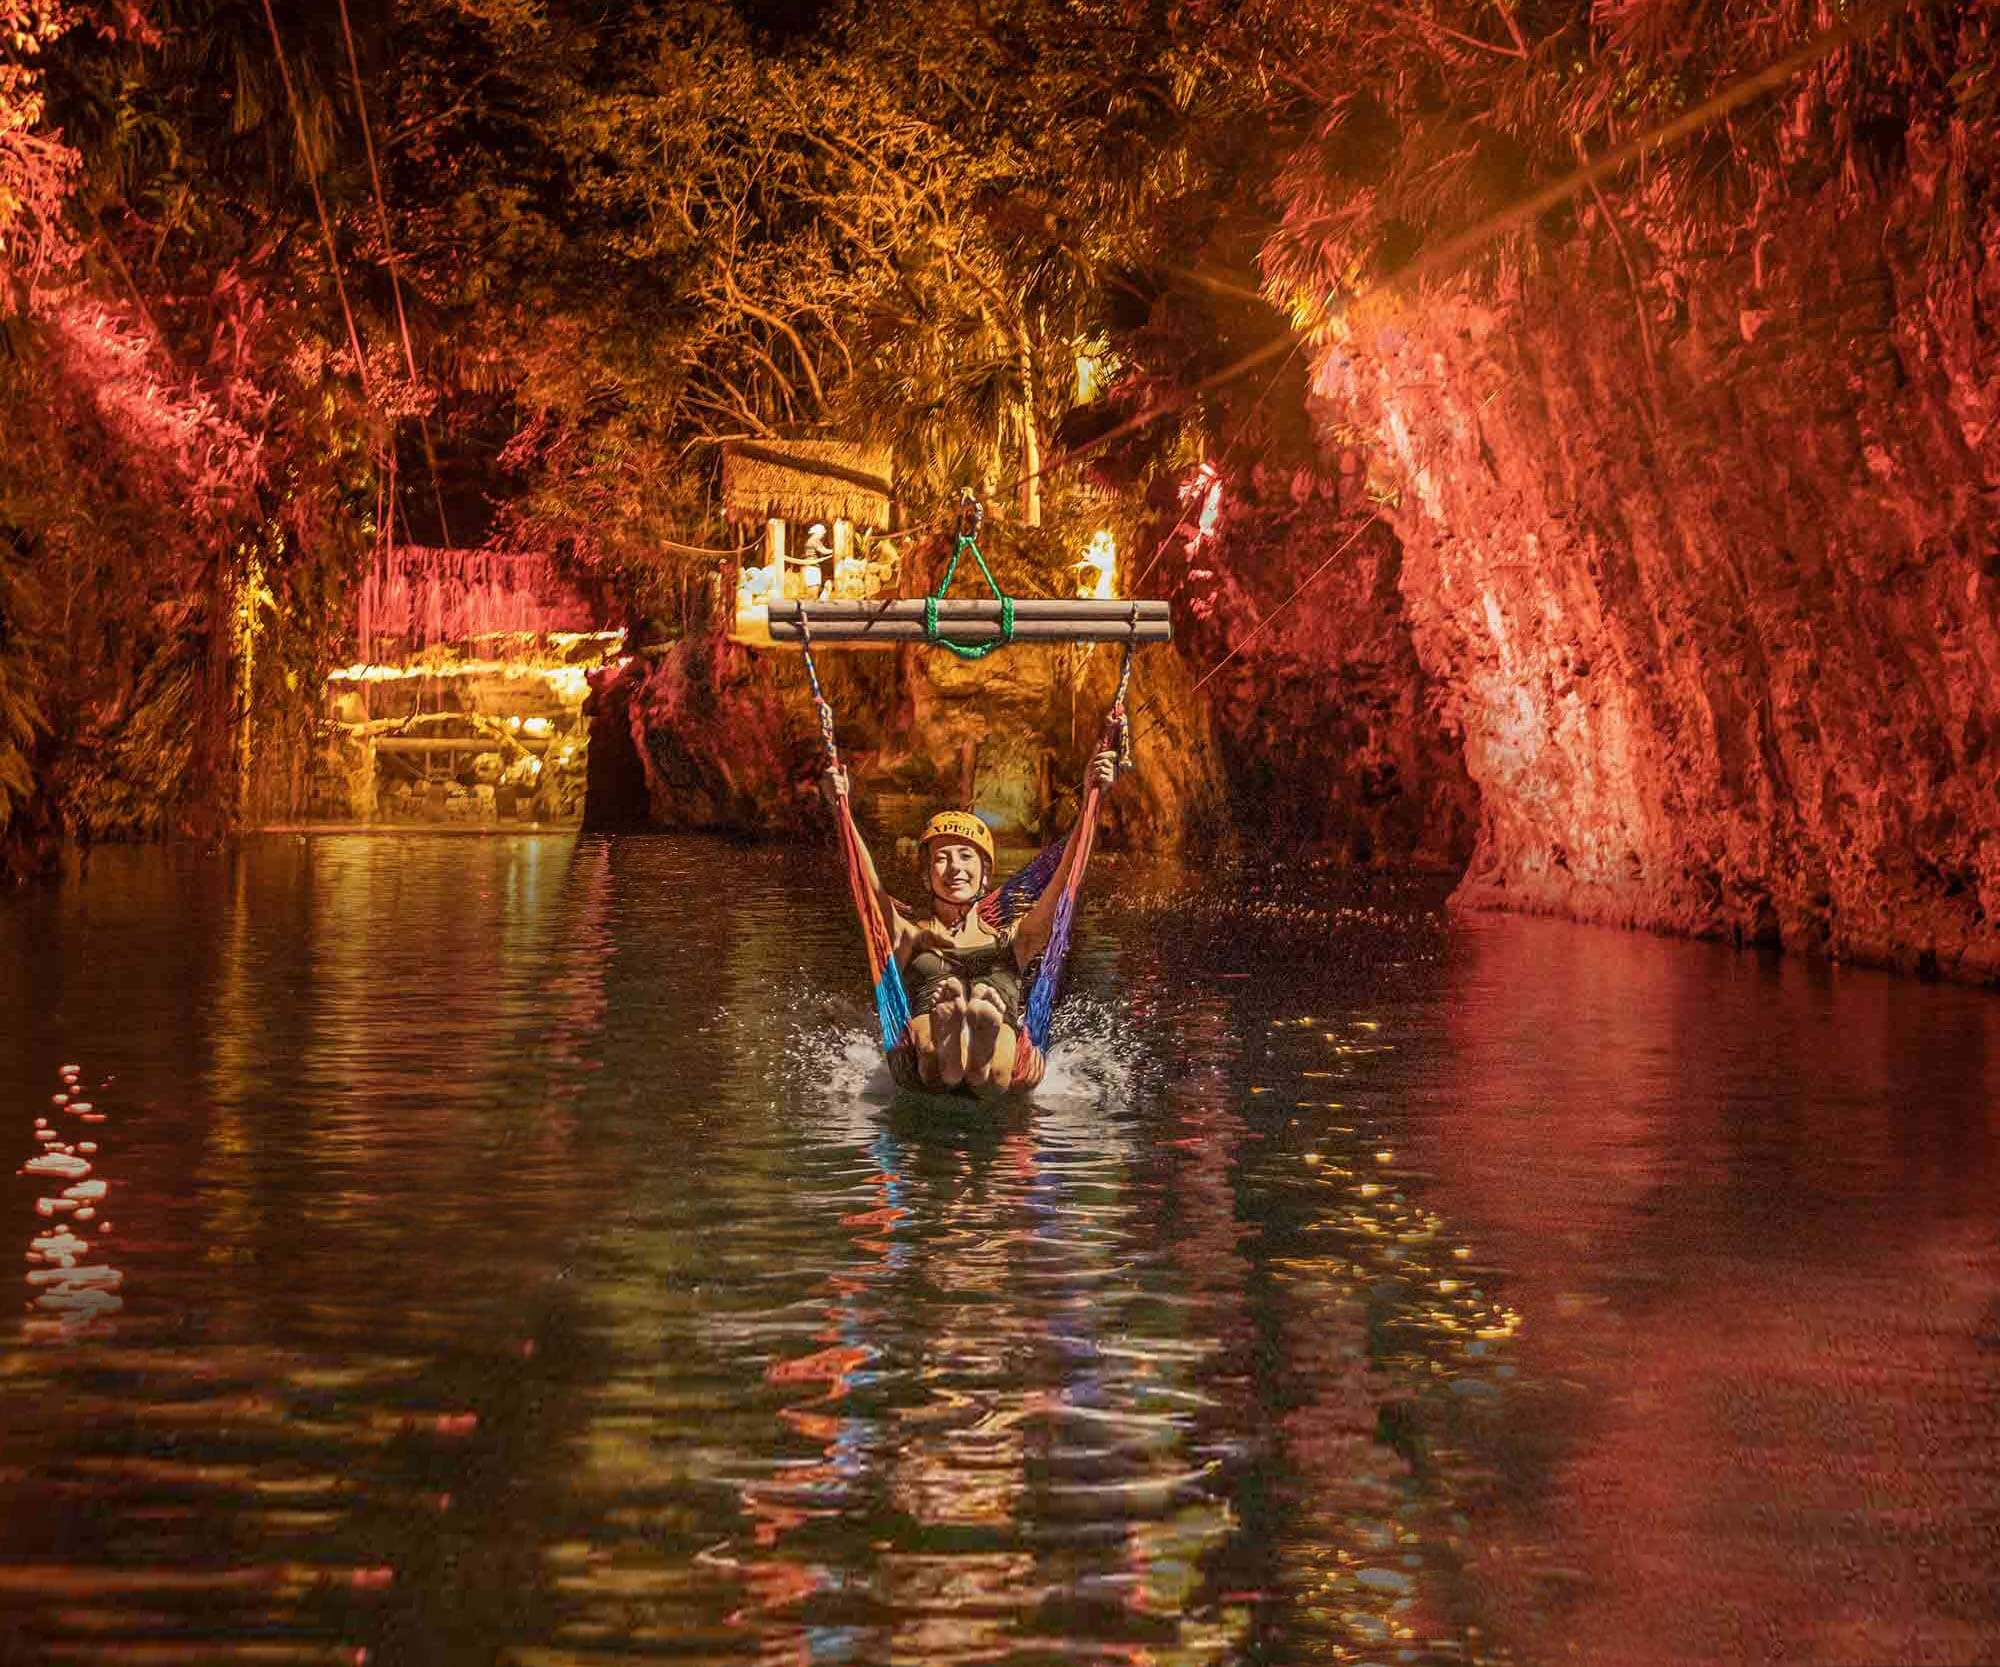 Ride a hammock-style zip-line and take a dip into a cenote at Xplor Fuego